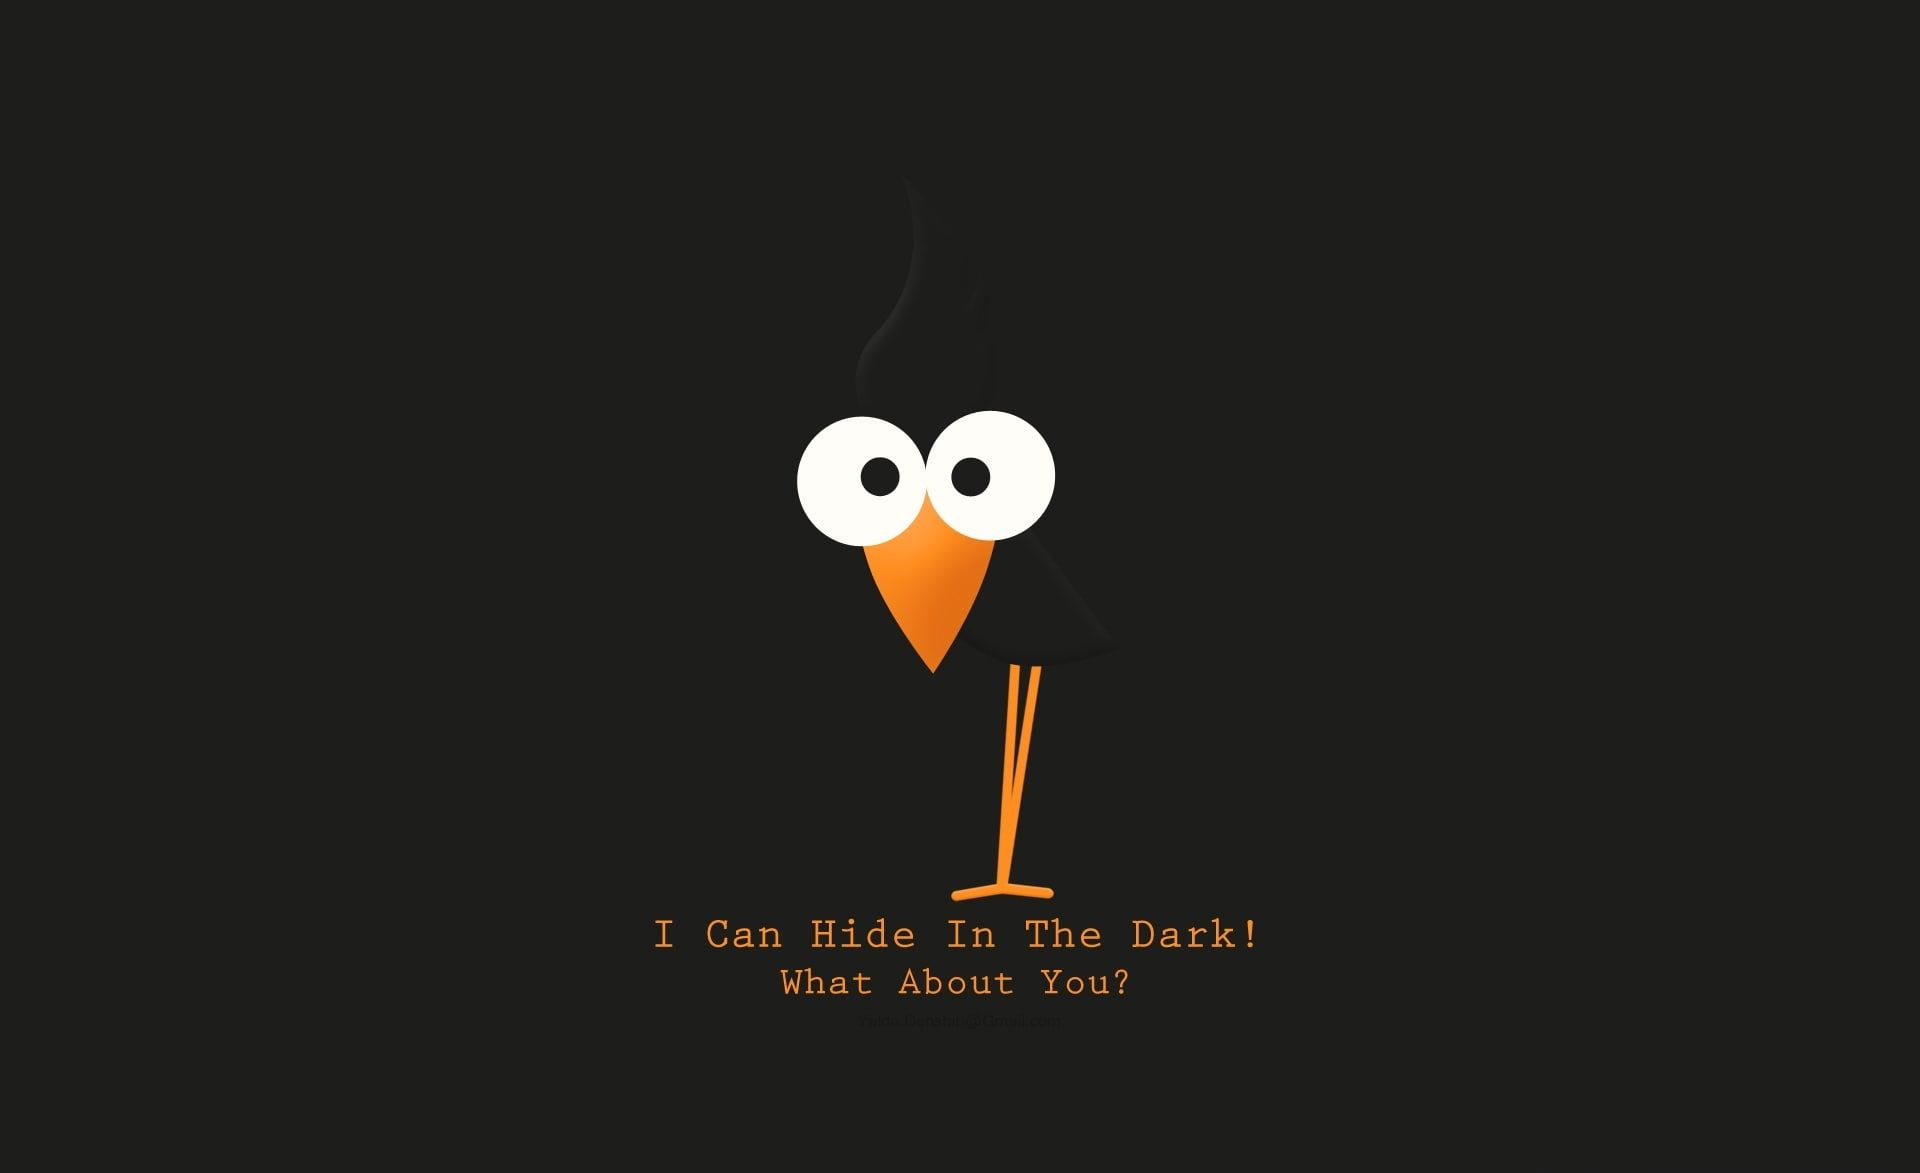 I Can Hide I Can Hide In The Dark What About You Digital Wallpaper Funny Bird Funny Cartoon Funny Quotes Wallpaper Funny Wallpapers Funny Wallpaper